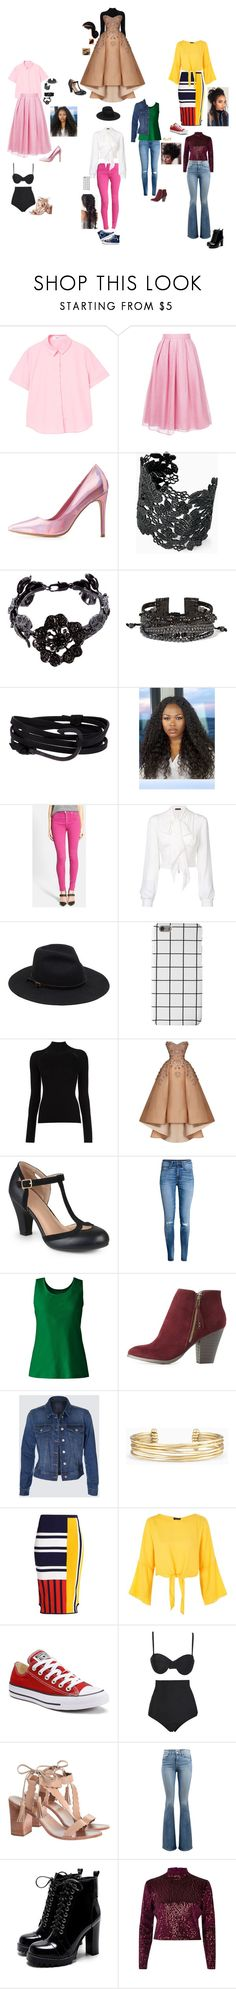 """""""My african american style"""" by dance4ever1222 ❤ liked on Polyvore featuring MANGO, Jupe By Jackie, Charlotte Russe, Stella & Dot, Valentino, Chan Luu, MIANSAI, Hudson Jeans, Plein Sud and Converse"""